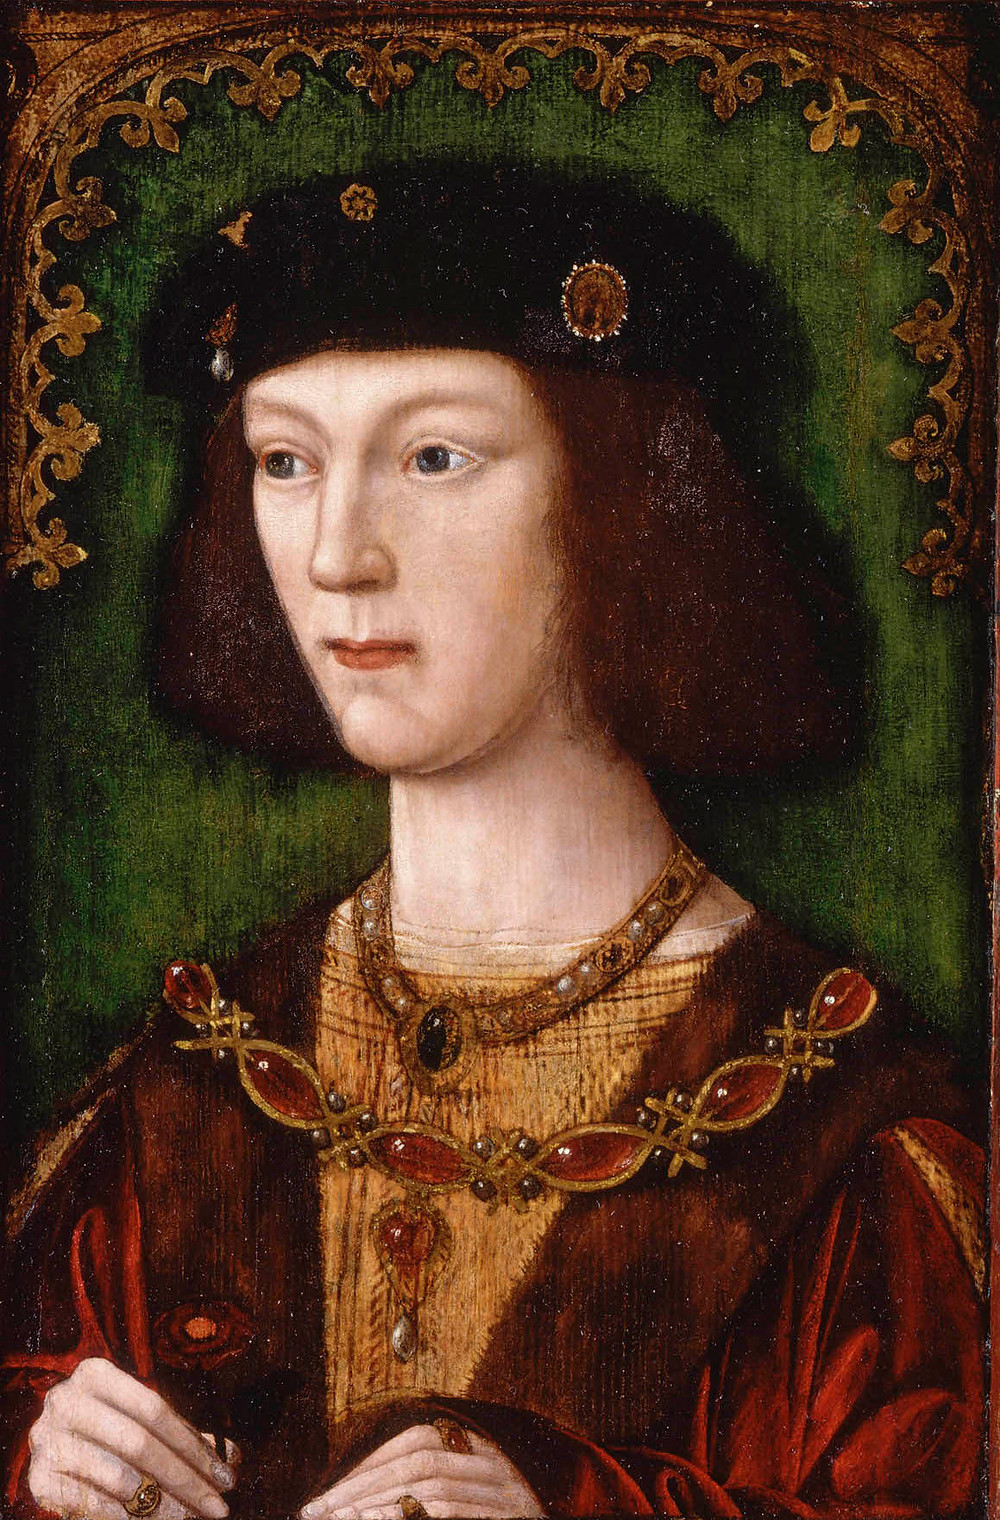 Henry VIII aged eighteen in 1509, shortly after his coronation